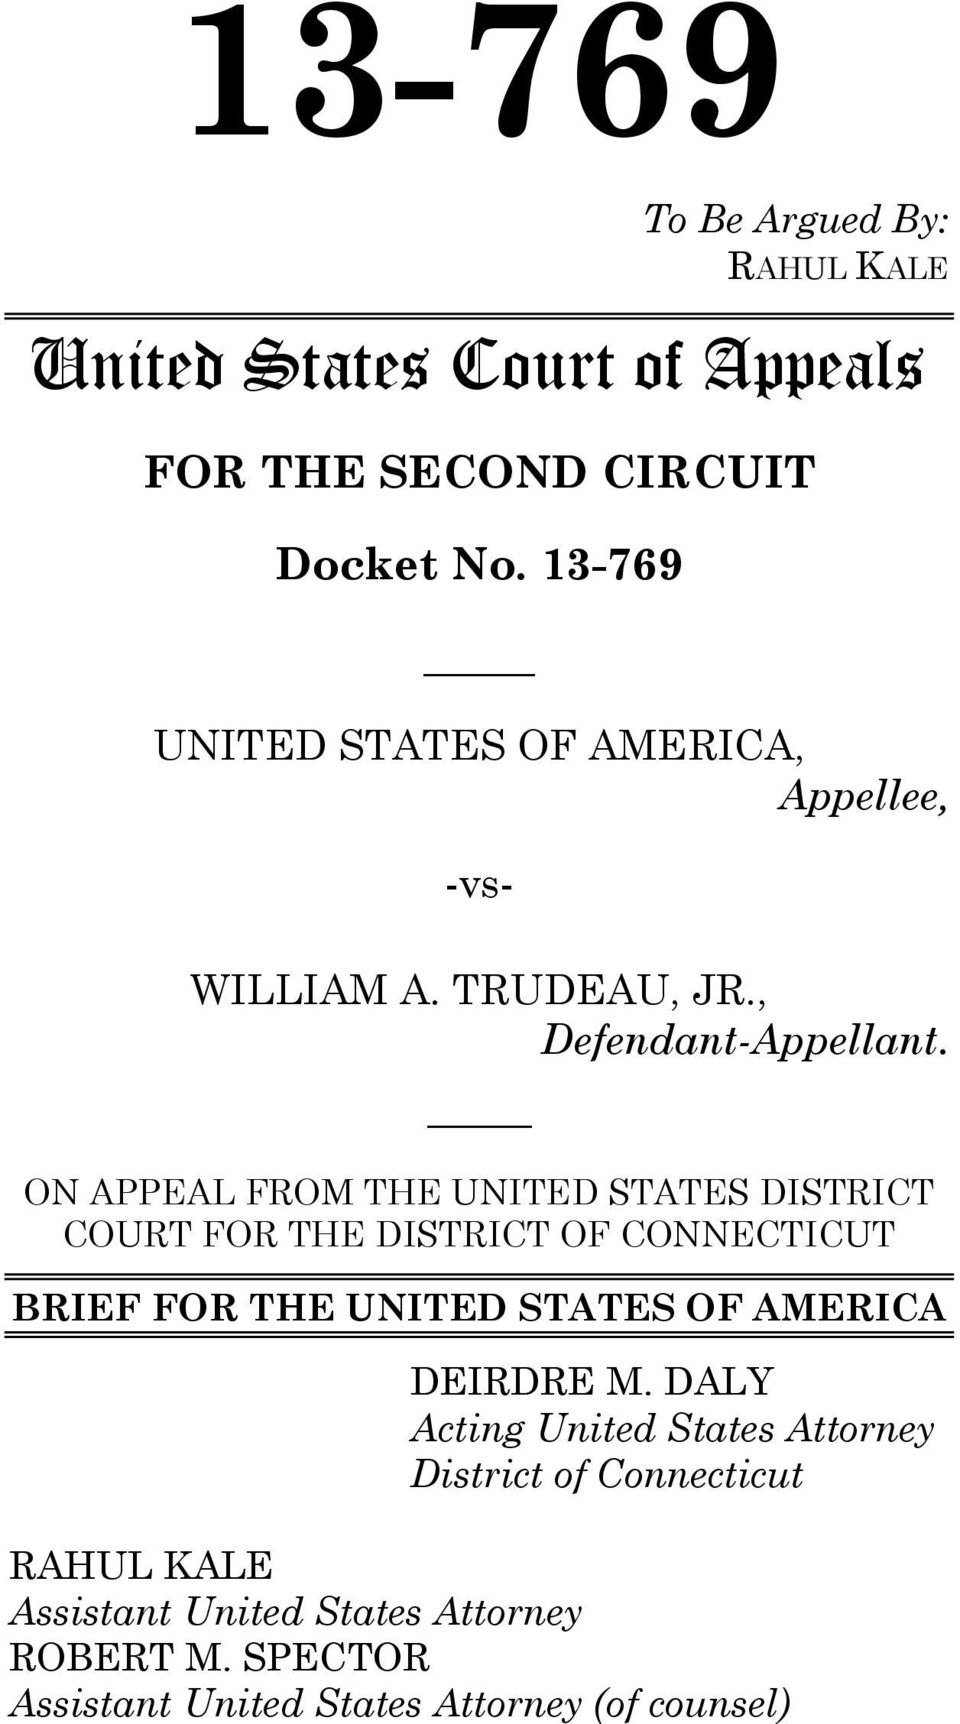 ON APPEAL FROM THE UNITED STATES DISTRICT COURT FOR THE DISTRICT OF CONNECTICUT BRIEF FOR THE UNITED STATES OF AMERICA